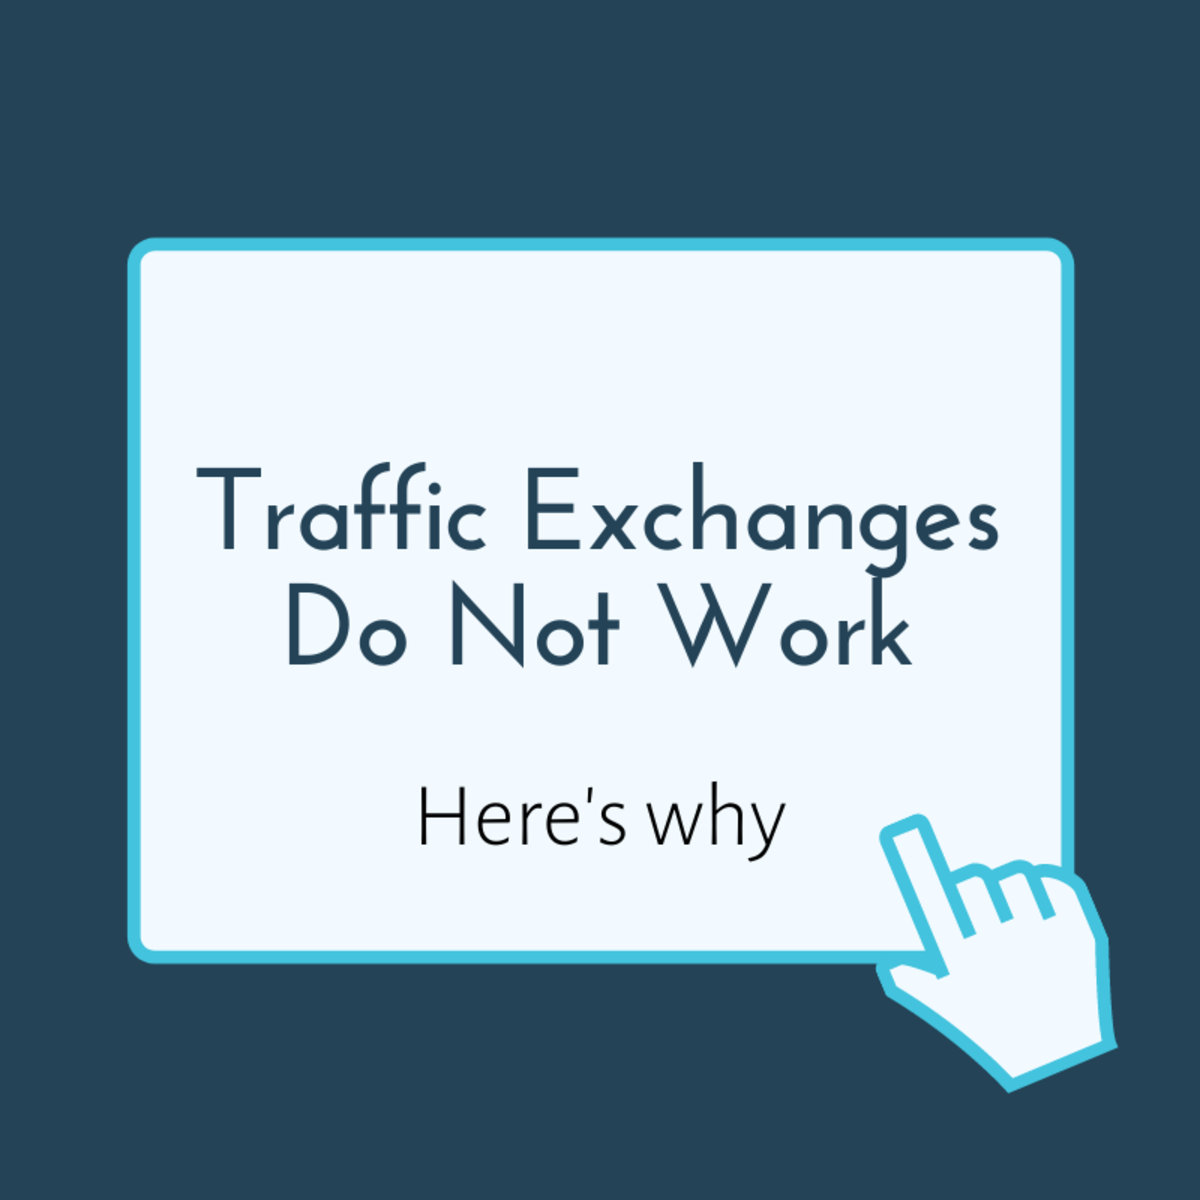 Traffic exchange websites do not work how you want them to, and they should be avoided.